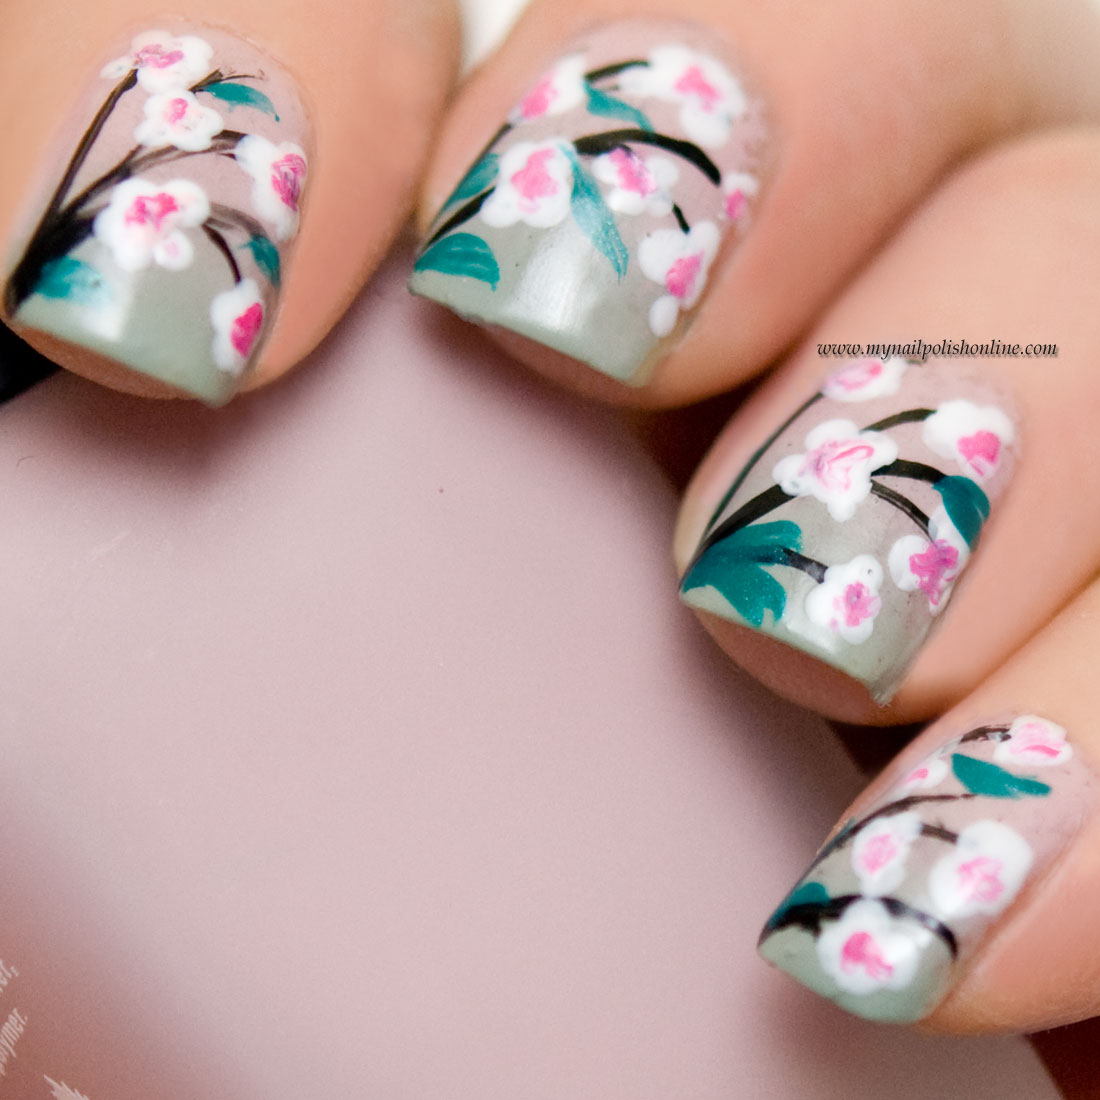 Nail Art - Flowers - My Nail Polish Online